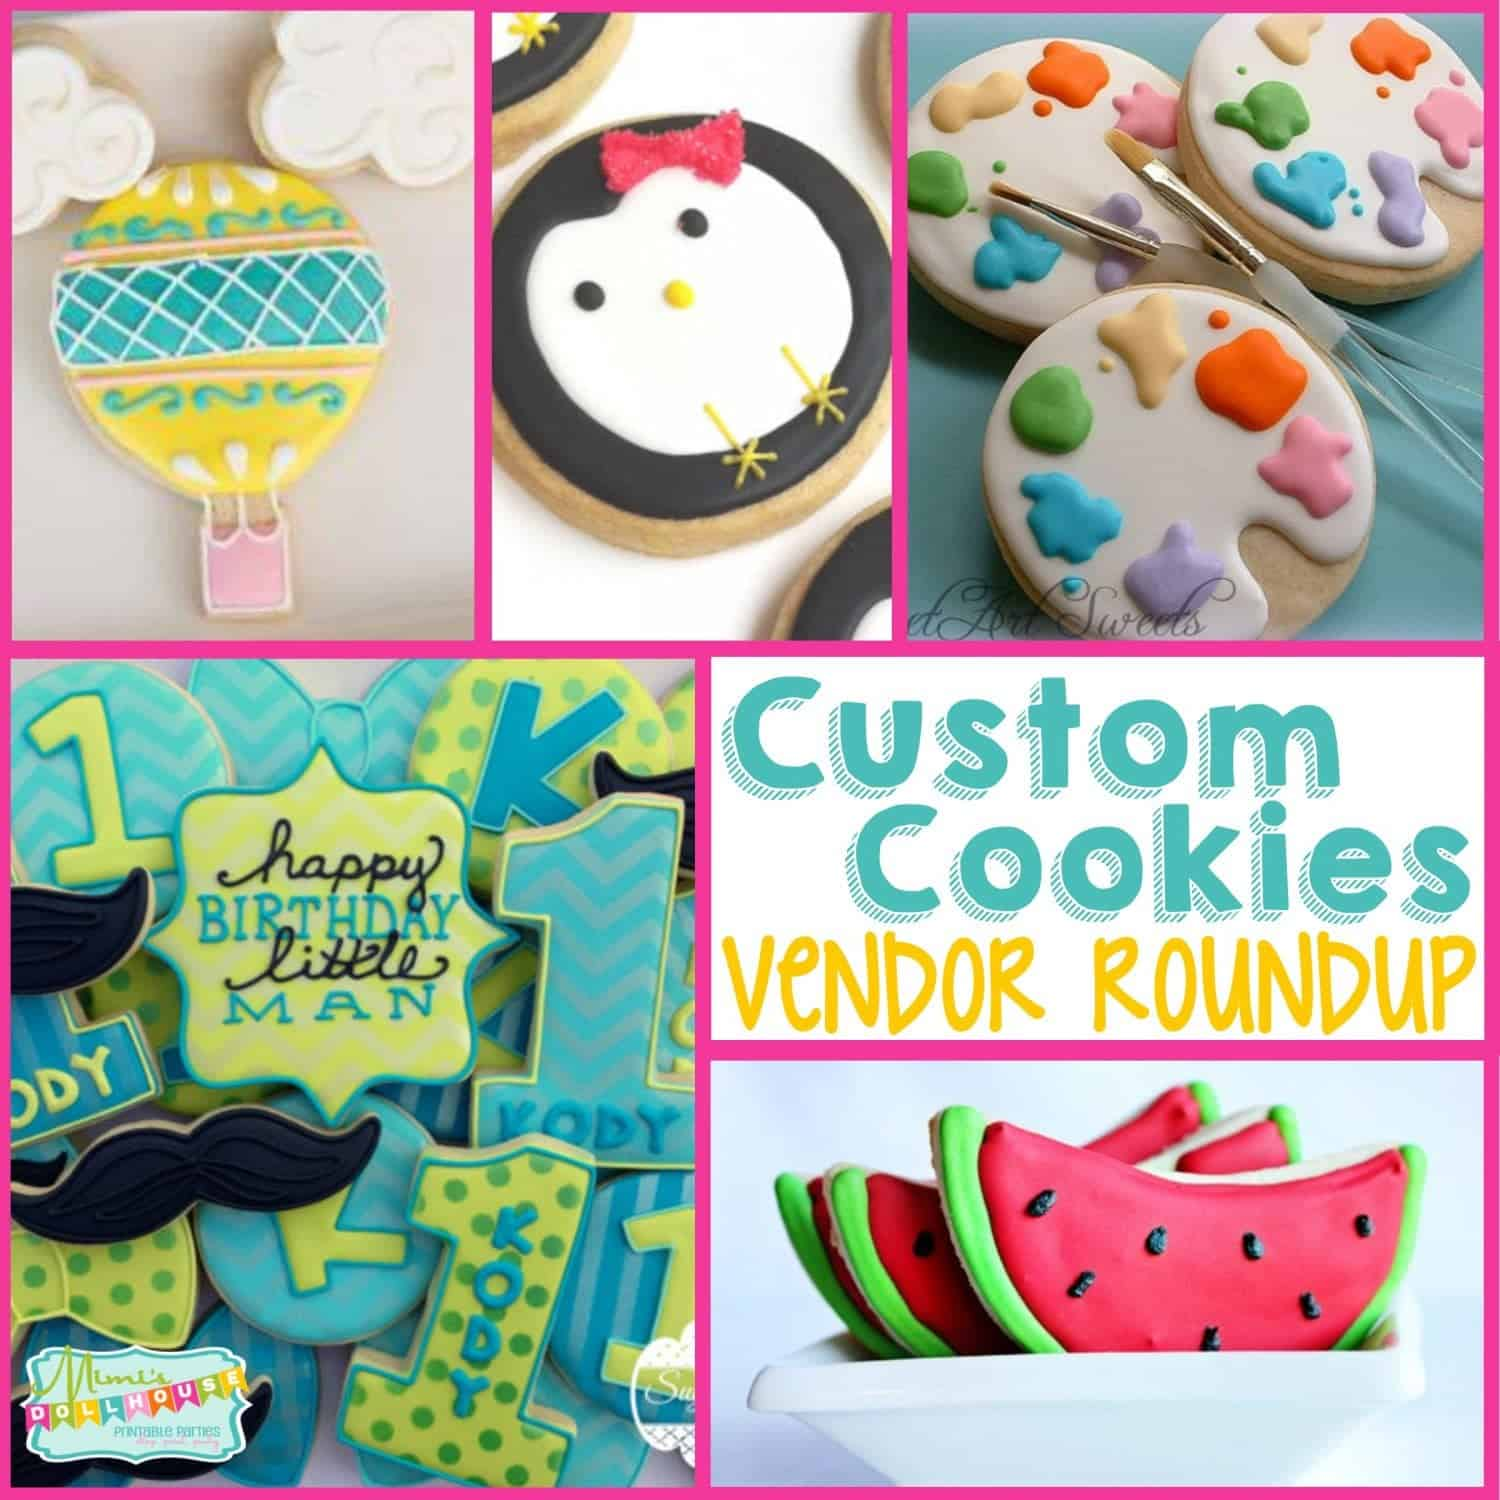 Vendor Roundup: Custom Cookies for your Party